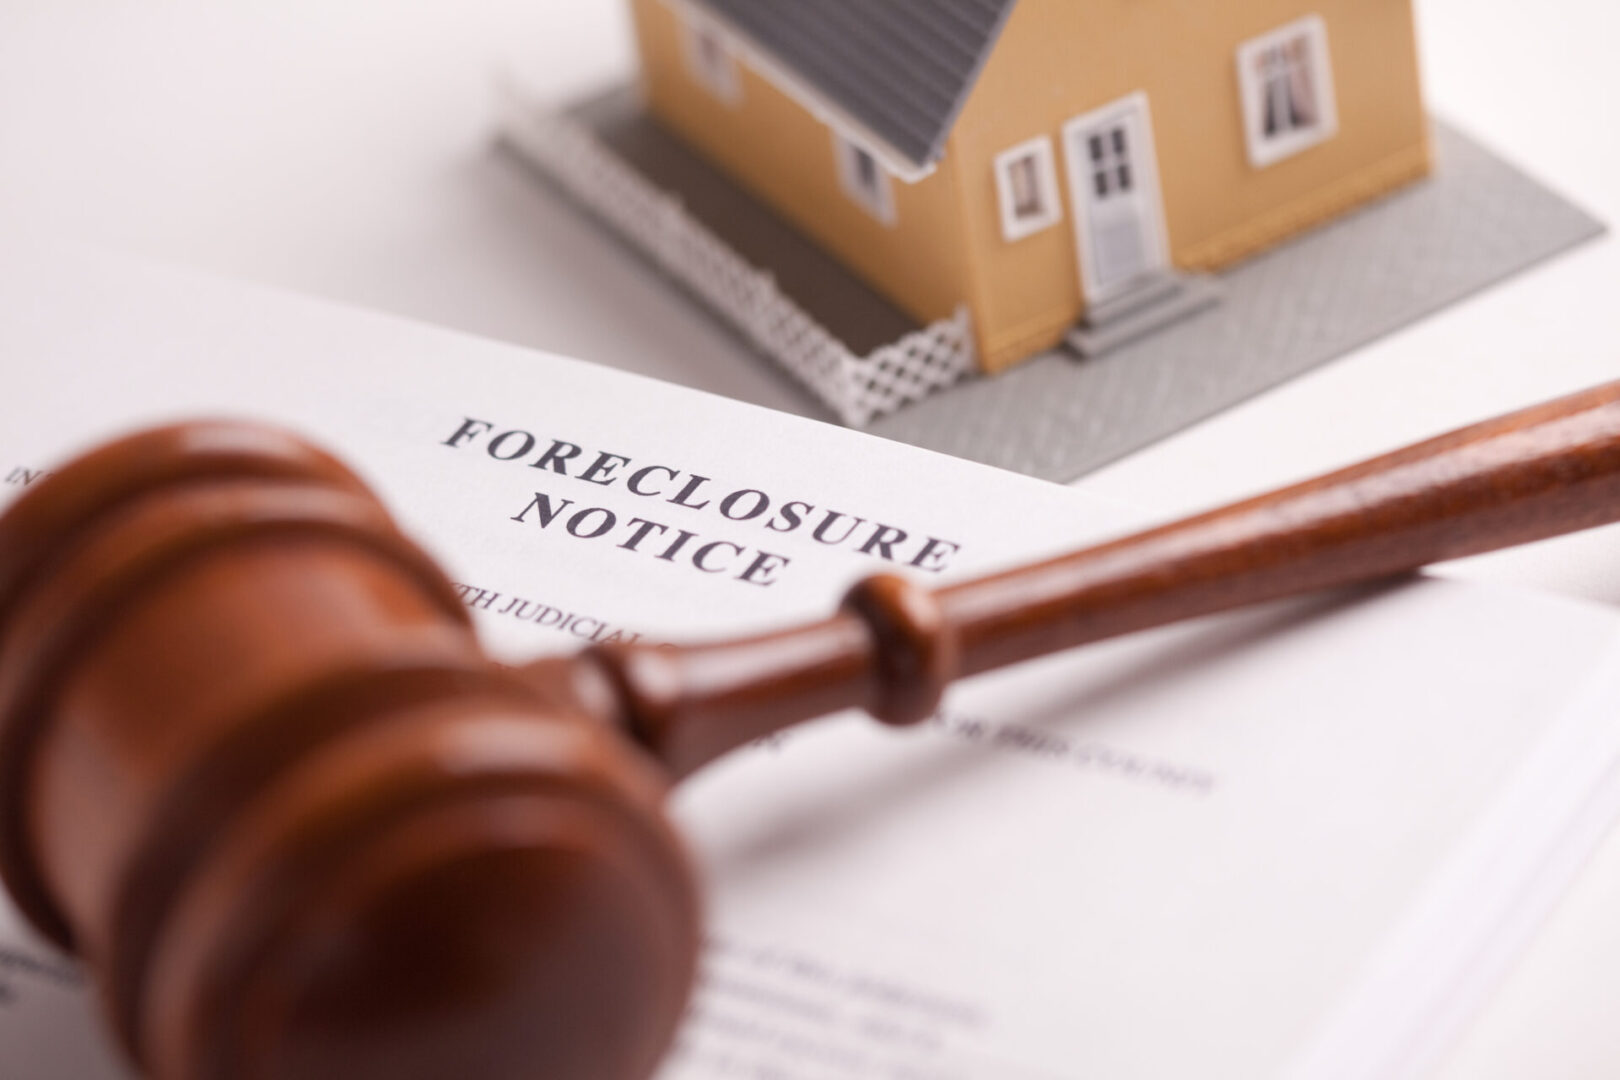 Foreclosure,Notice,,Gavel,And,Model,Home,With,Selective,Focus.